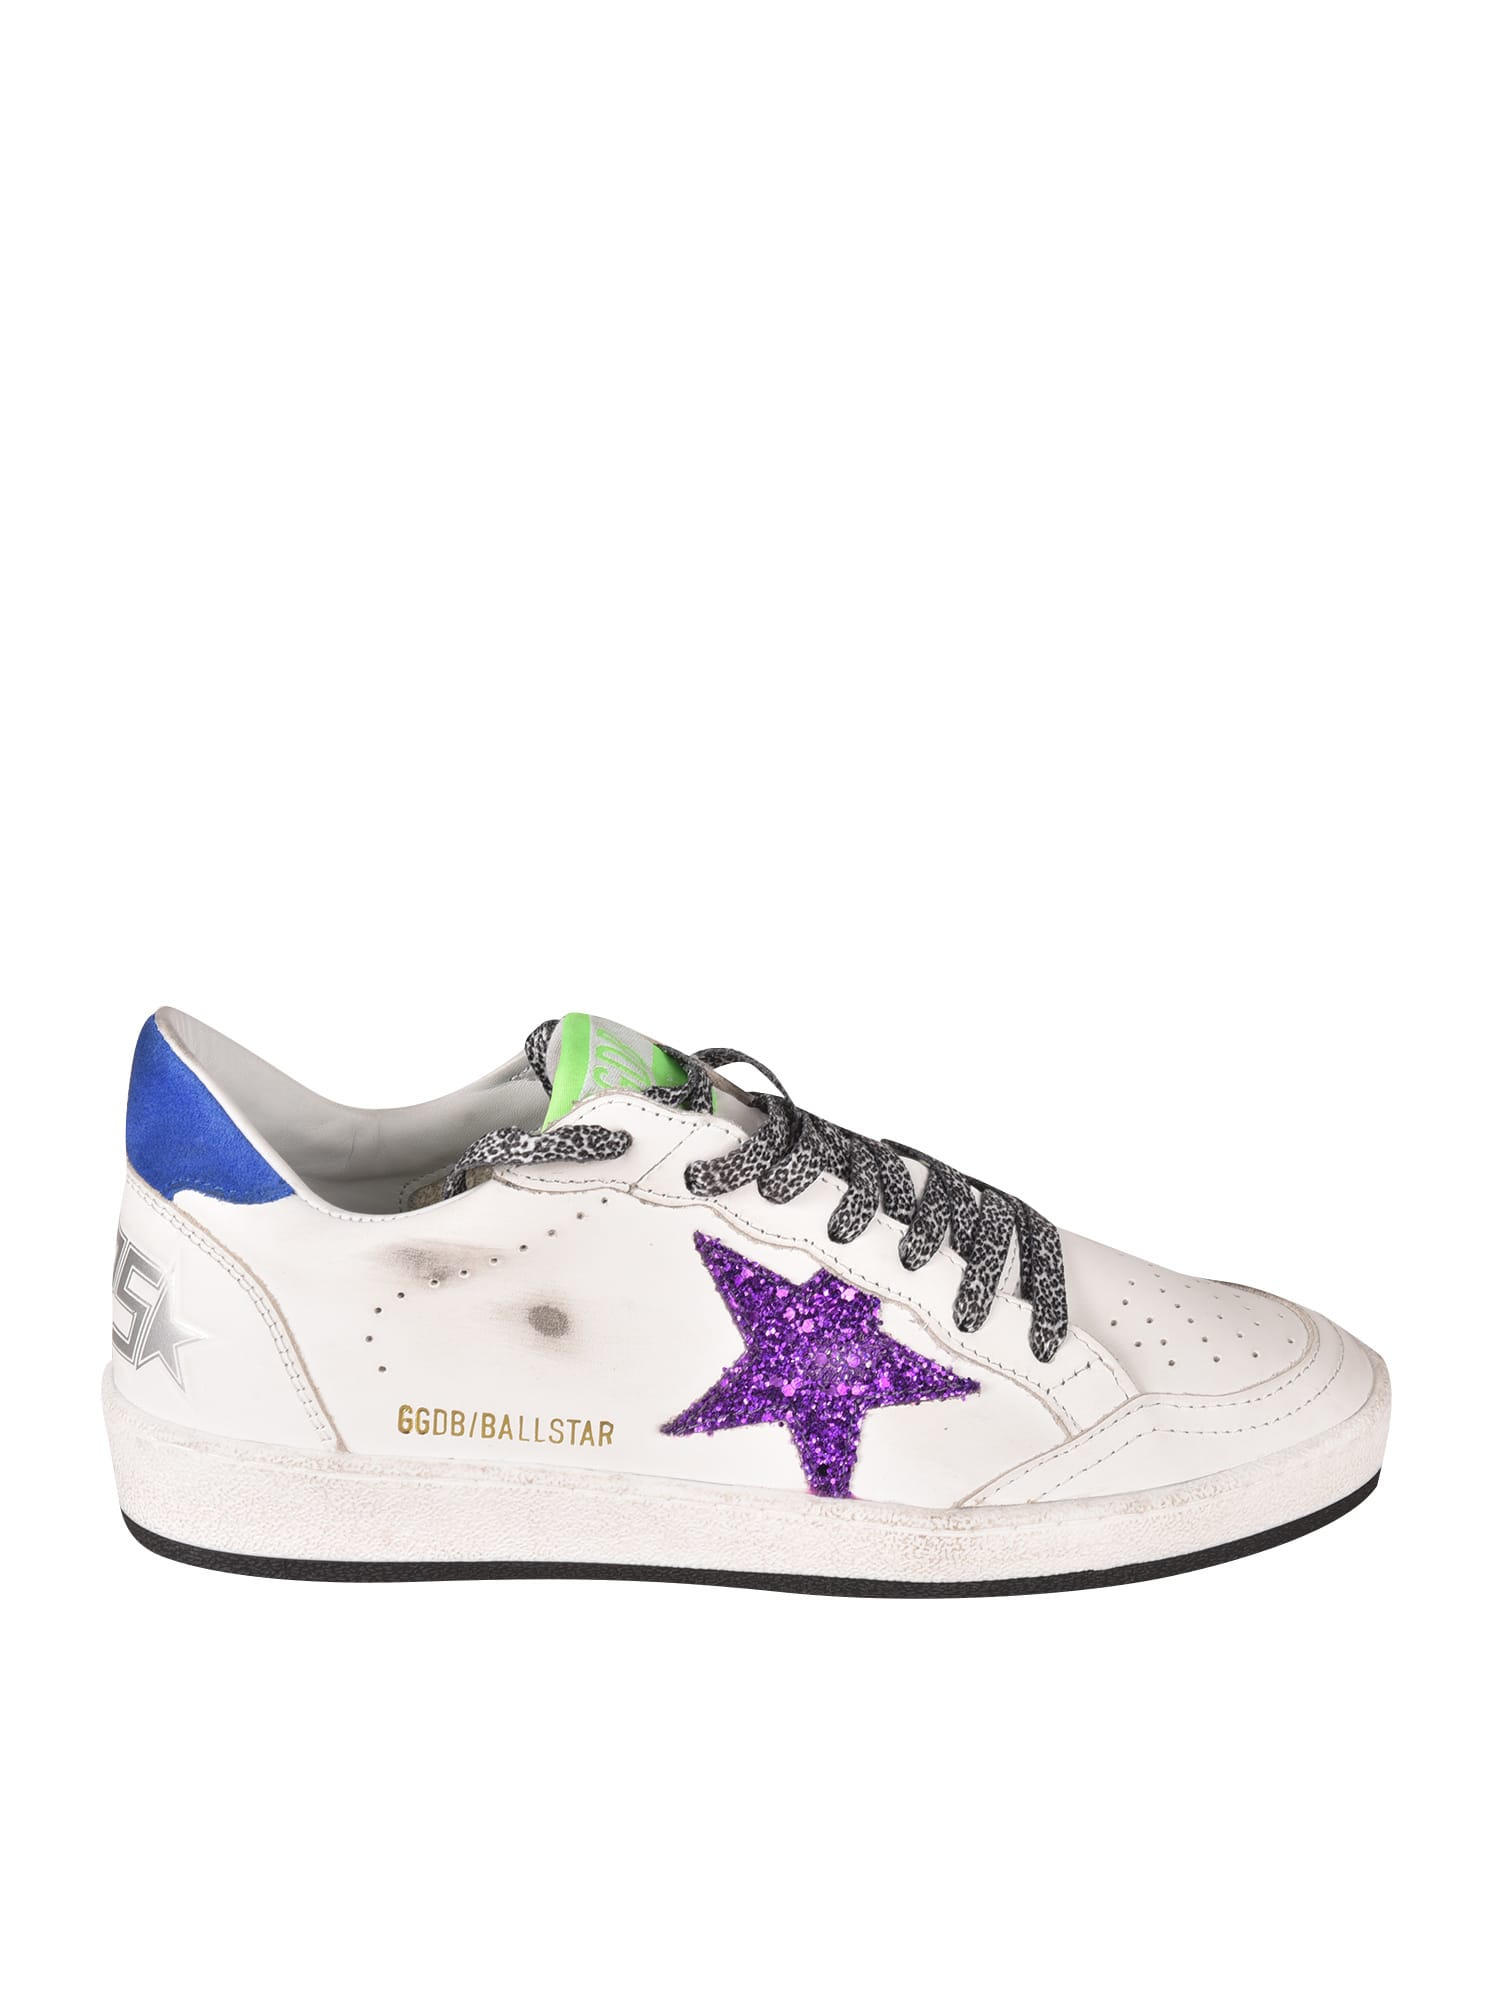 Buy Golden Goose Ballstar Glitter Sneakers online, shop Golden Goose shoes with free shipping